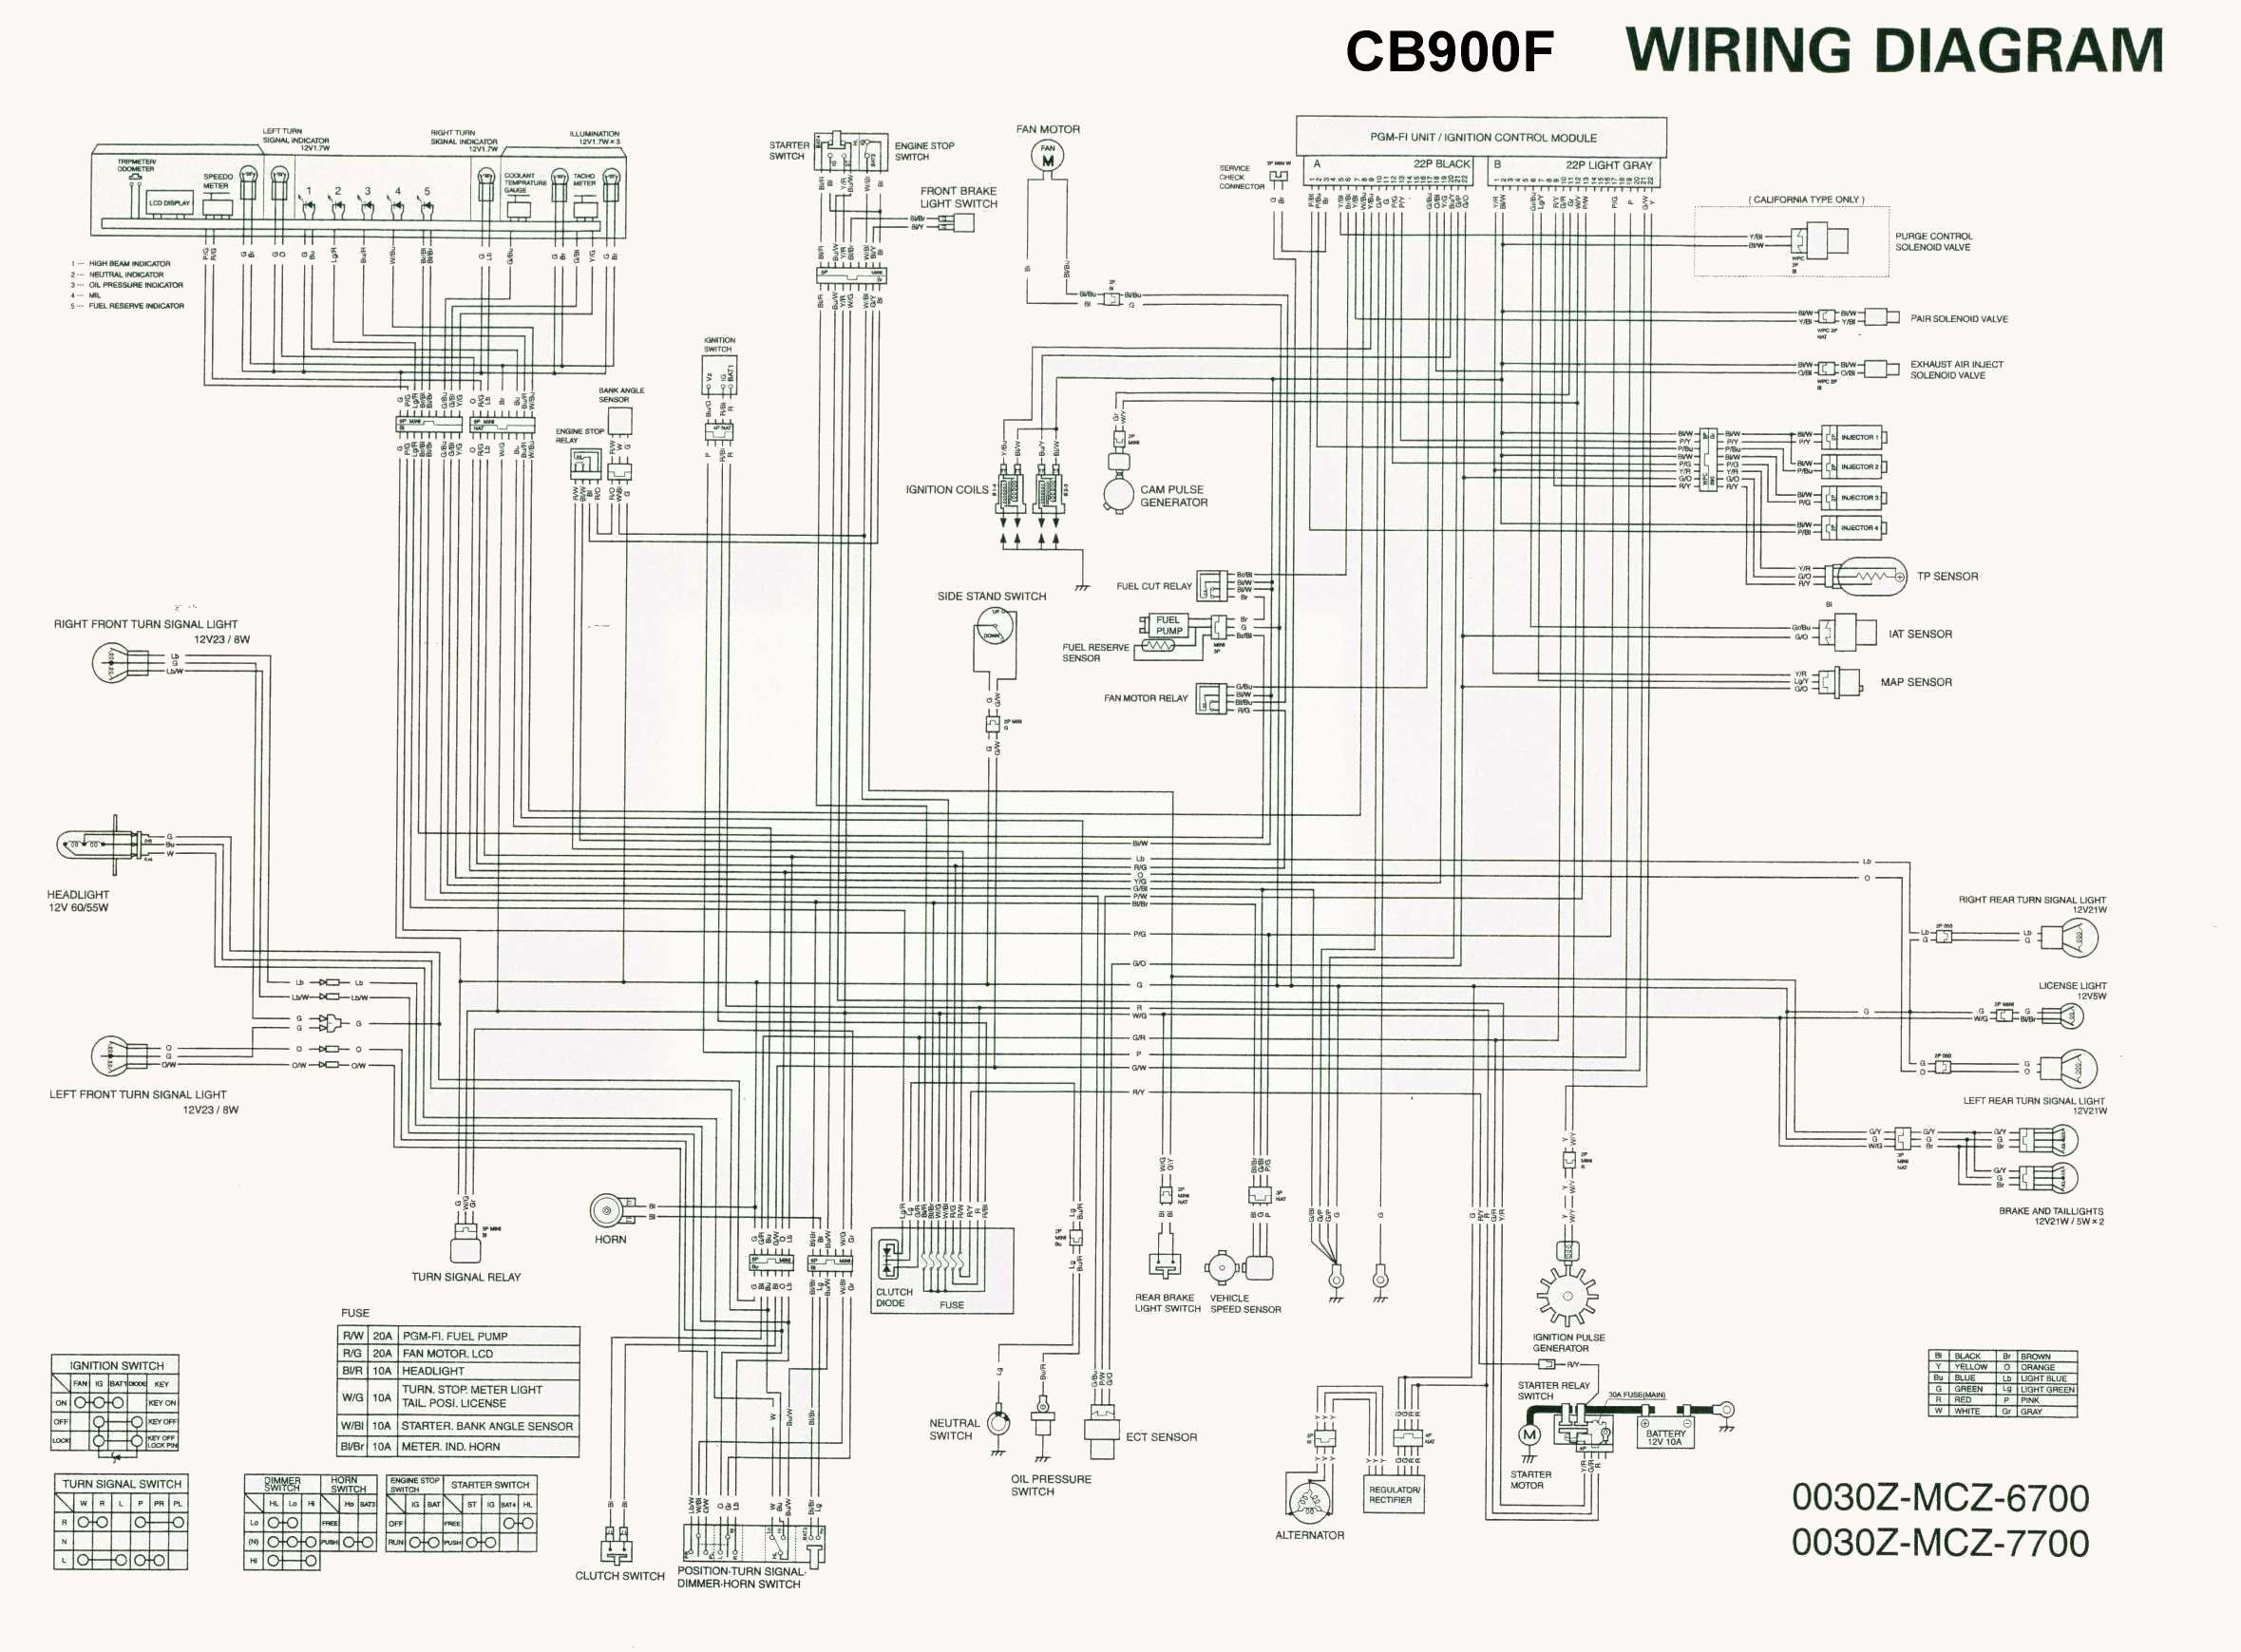 honda 300 cdi wire diagram  honda  wiring diagram images